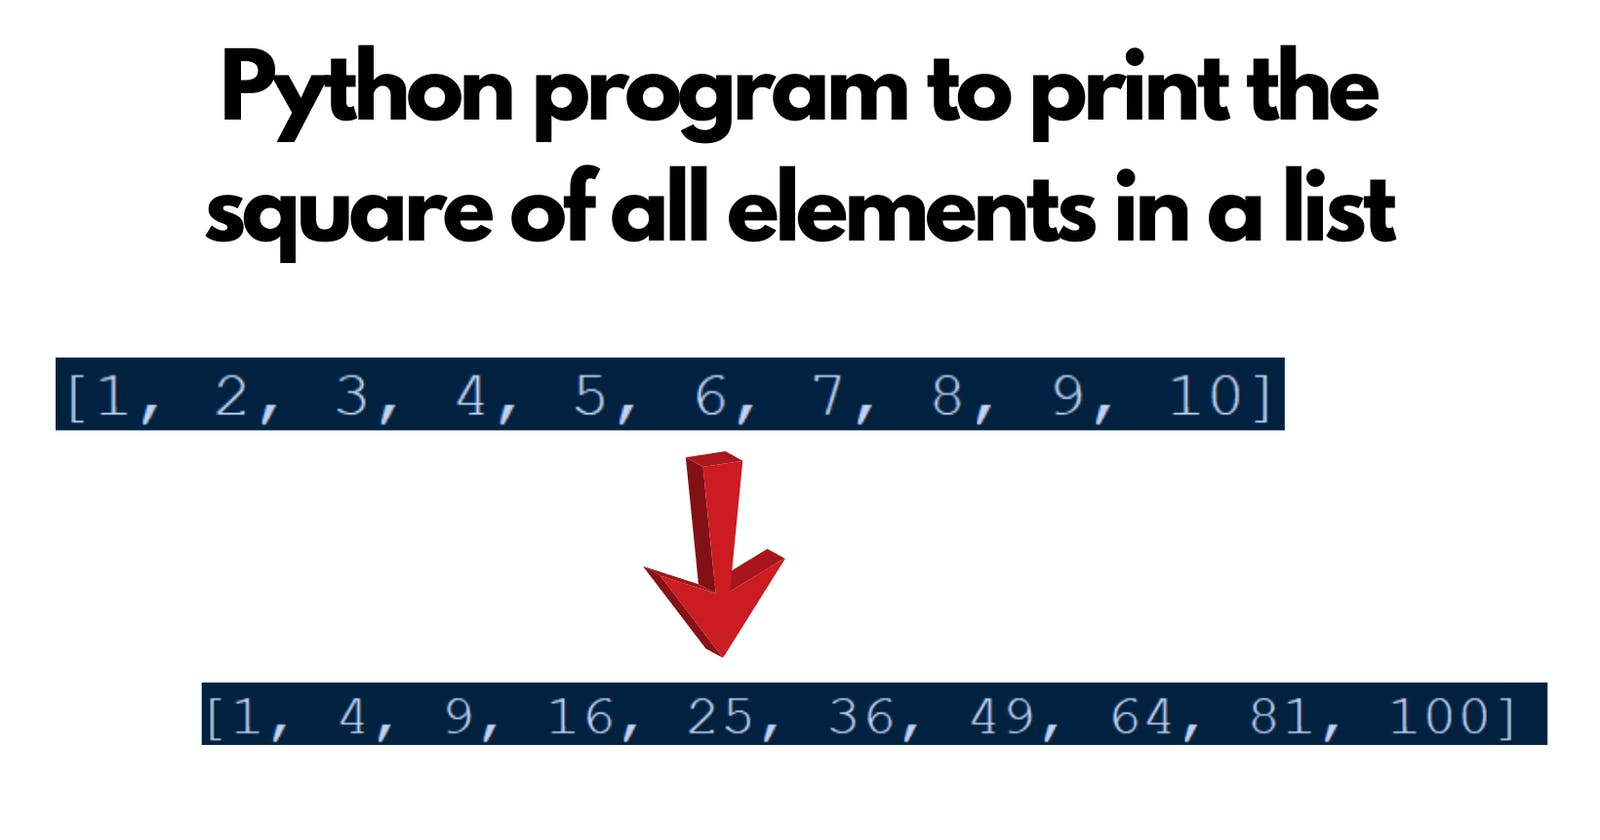 Python program to print the square of all elements in a list